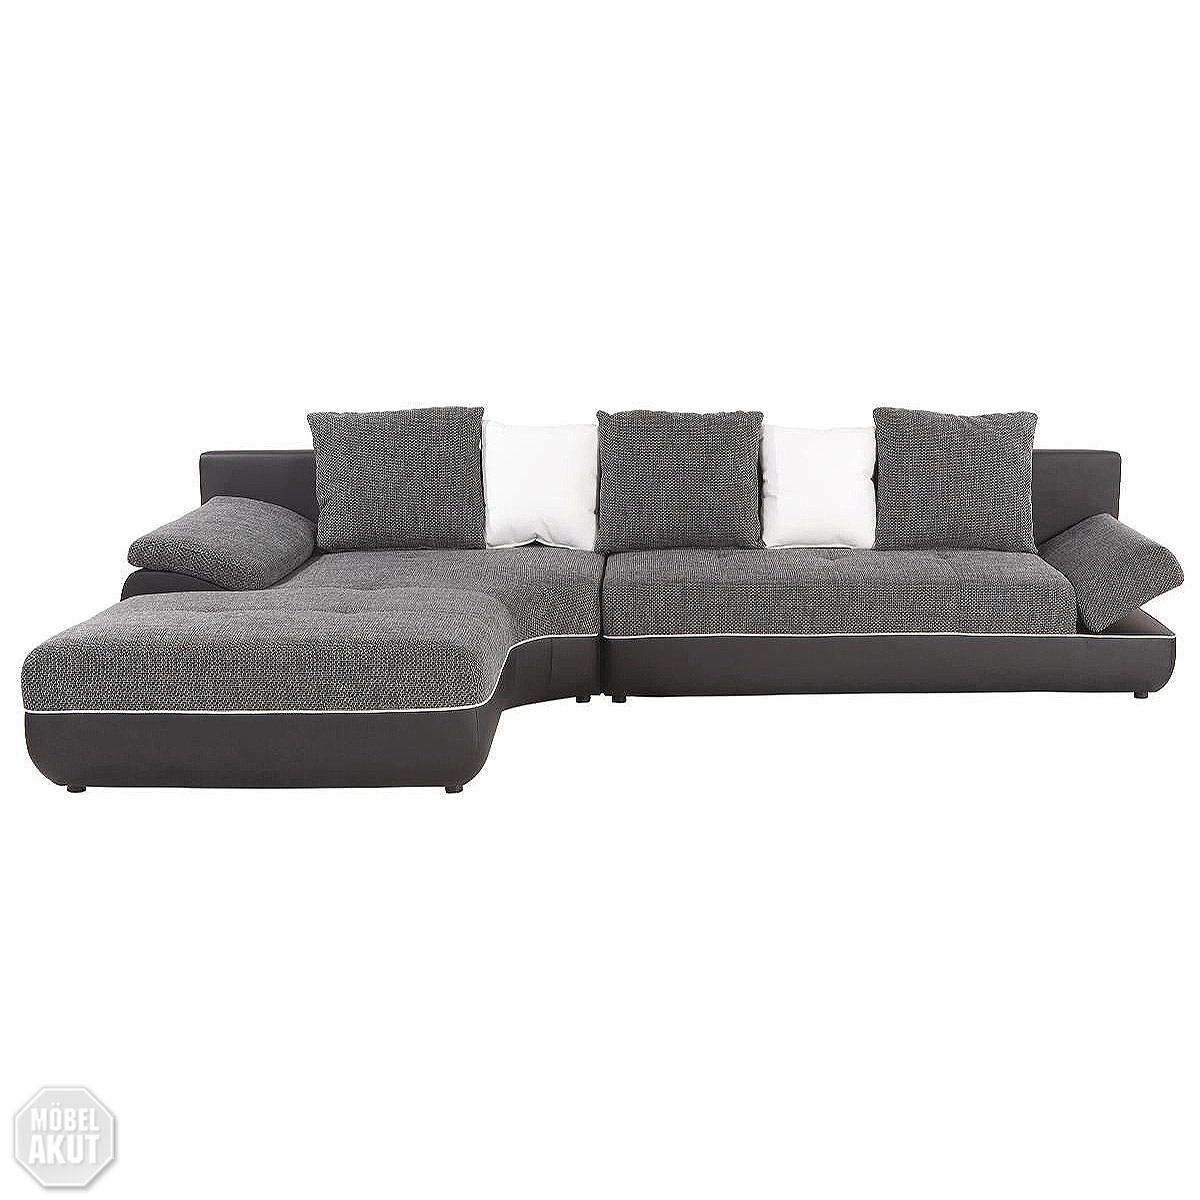 wohnlandschaft konga sofa eck sofa in grau creme. Black Bedroom Furniture Sets. Home Design Ideas